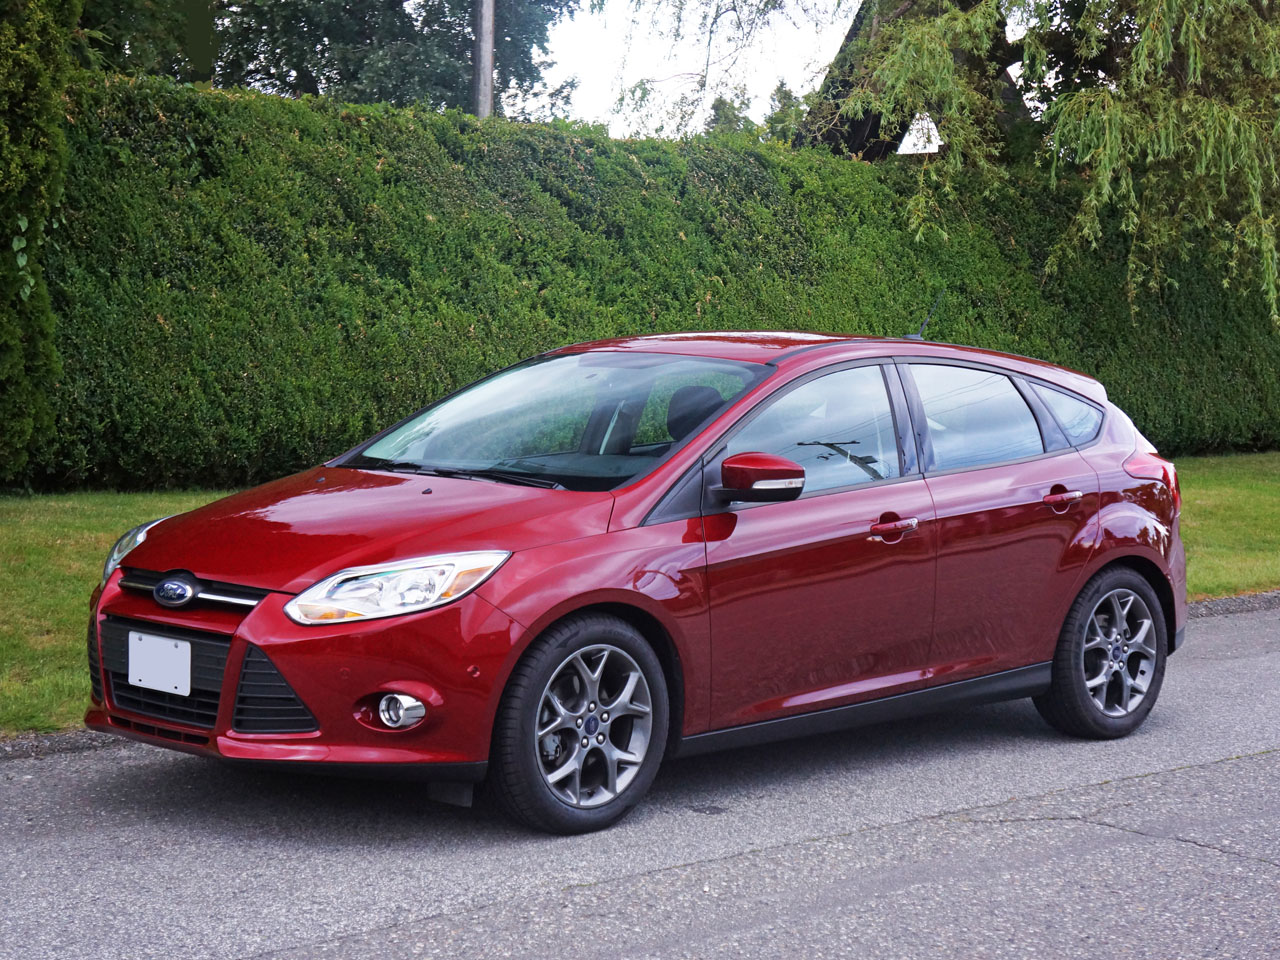 2014 Ford Focus Se Hatchback Road Test Review Carcostcanada Suspension